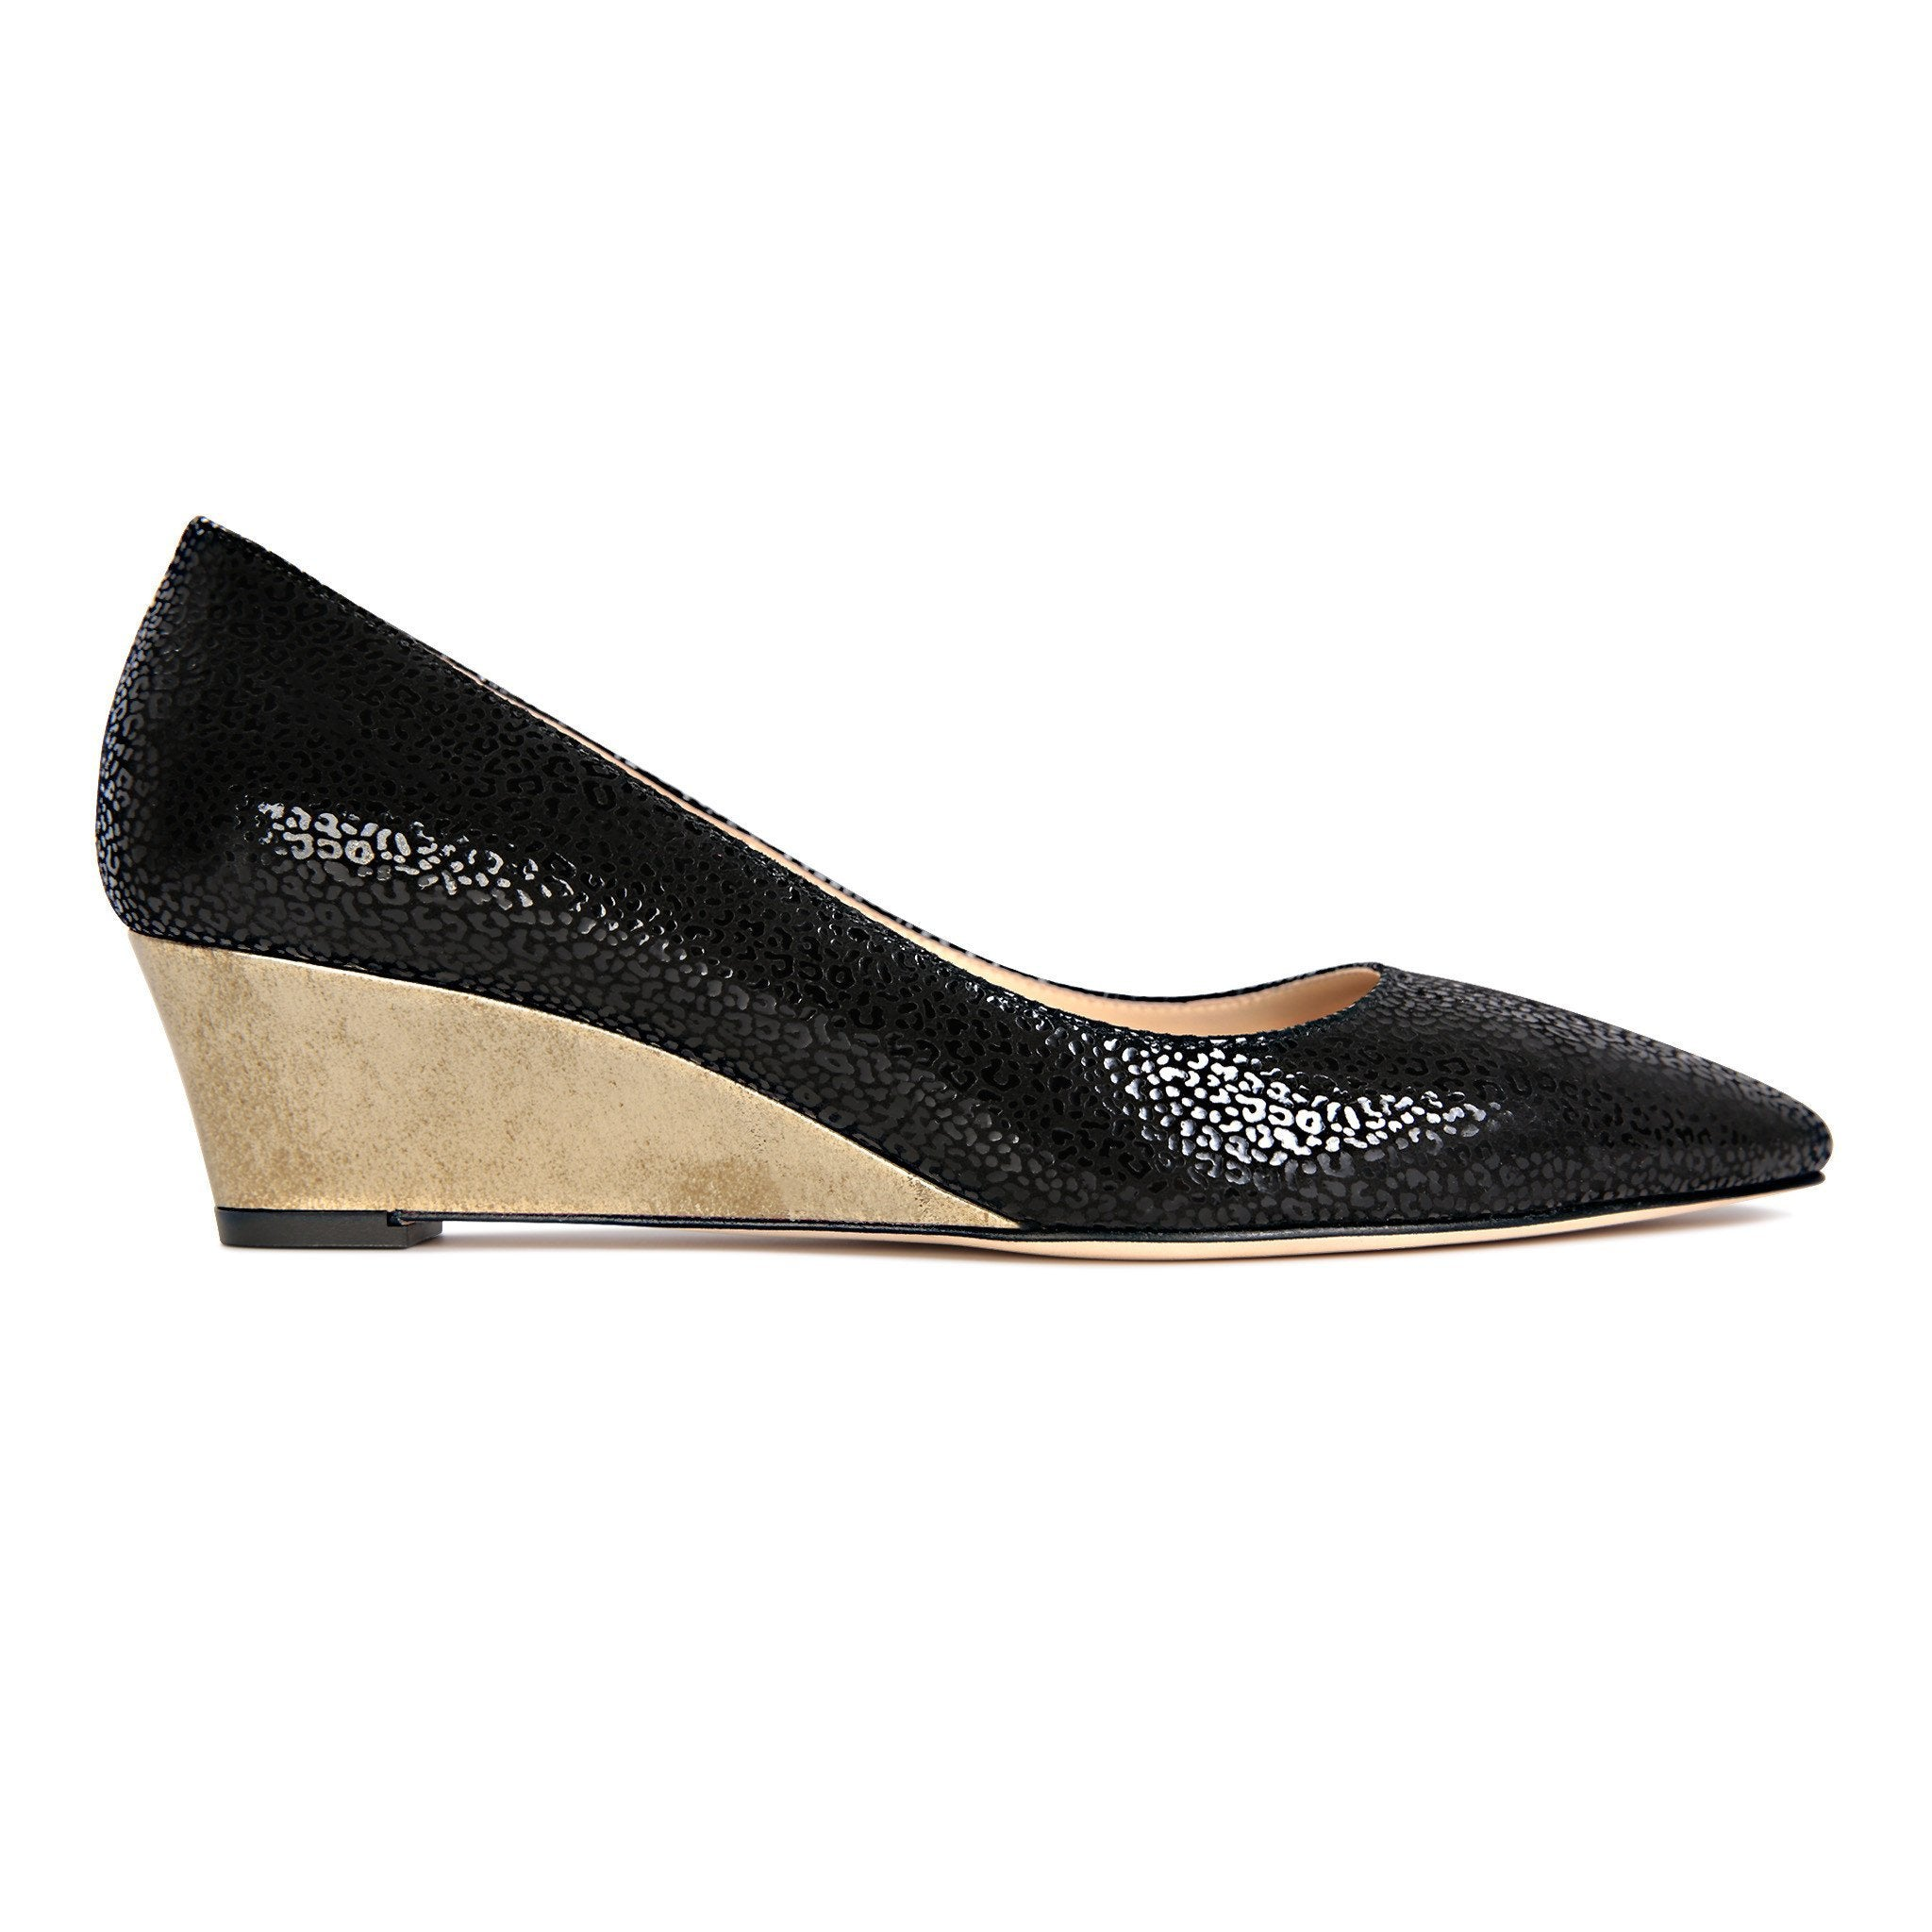 TRENTO - Savannah Nero + Metallic Spot Gold - VIAJIYU Shoes